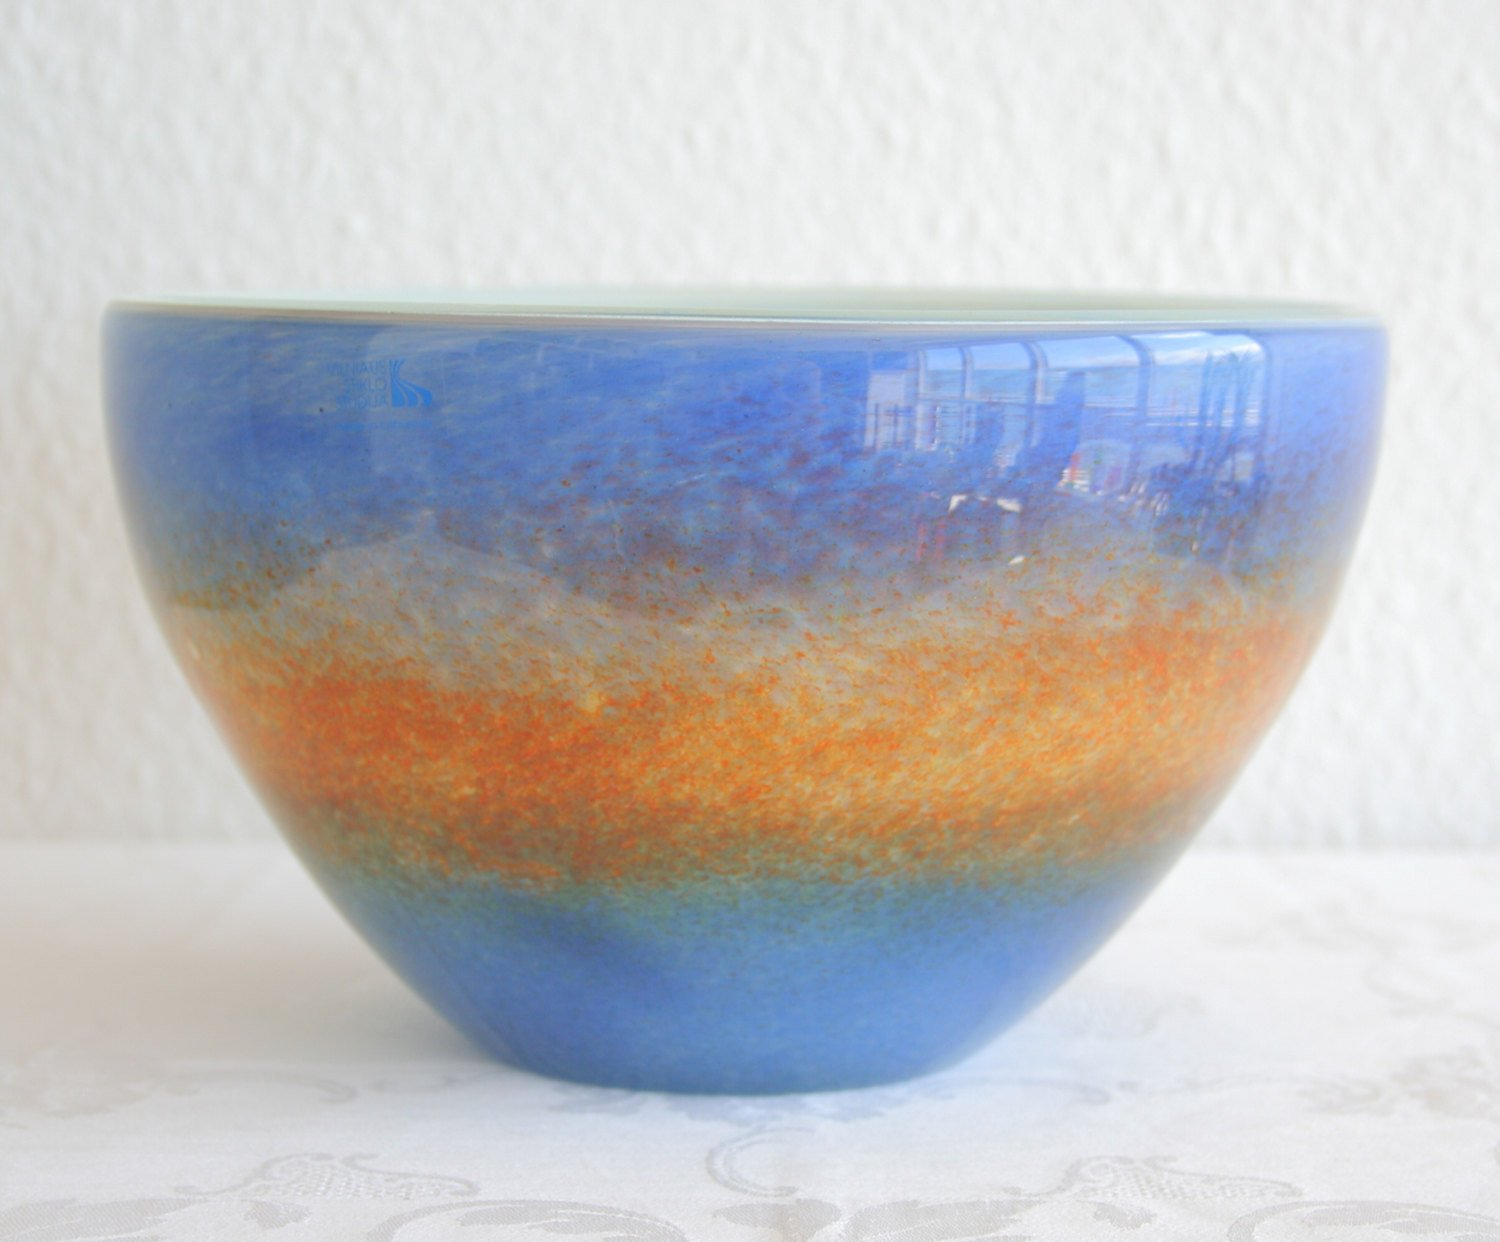 VILNIAUS STIKLO STUDIJA Contemporary Studio Art Blue Orange Glass Bowl - Mollaris.com